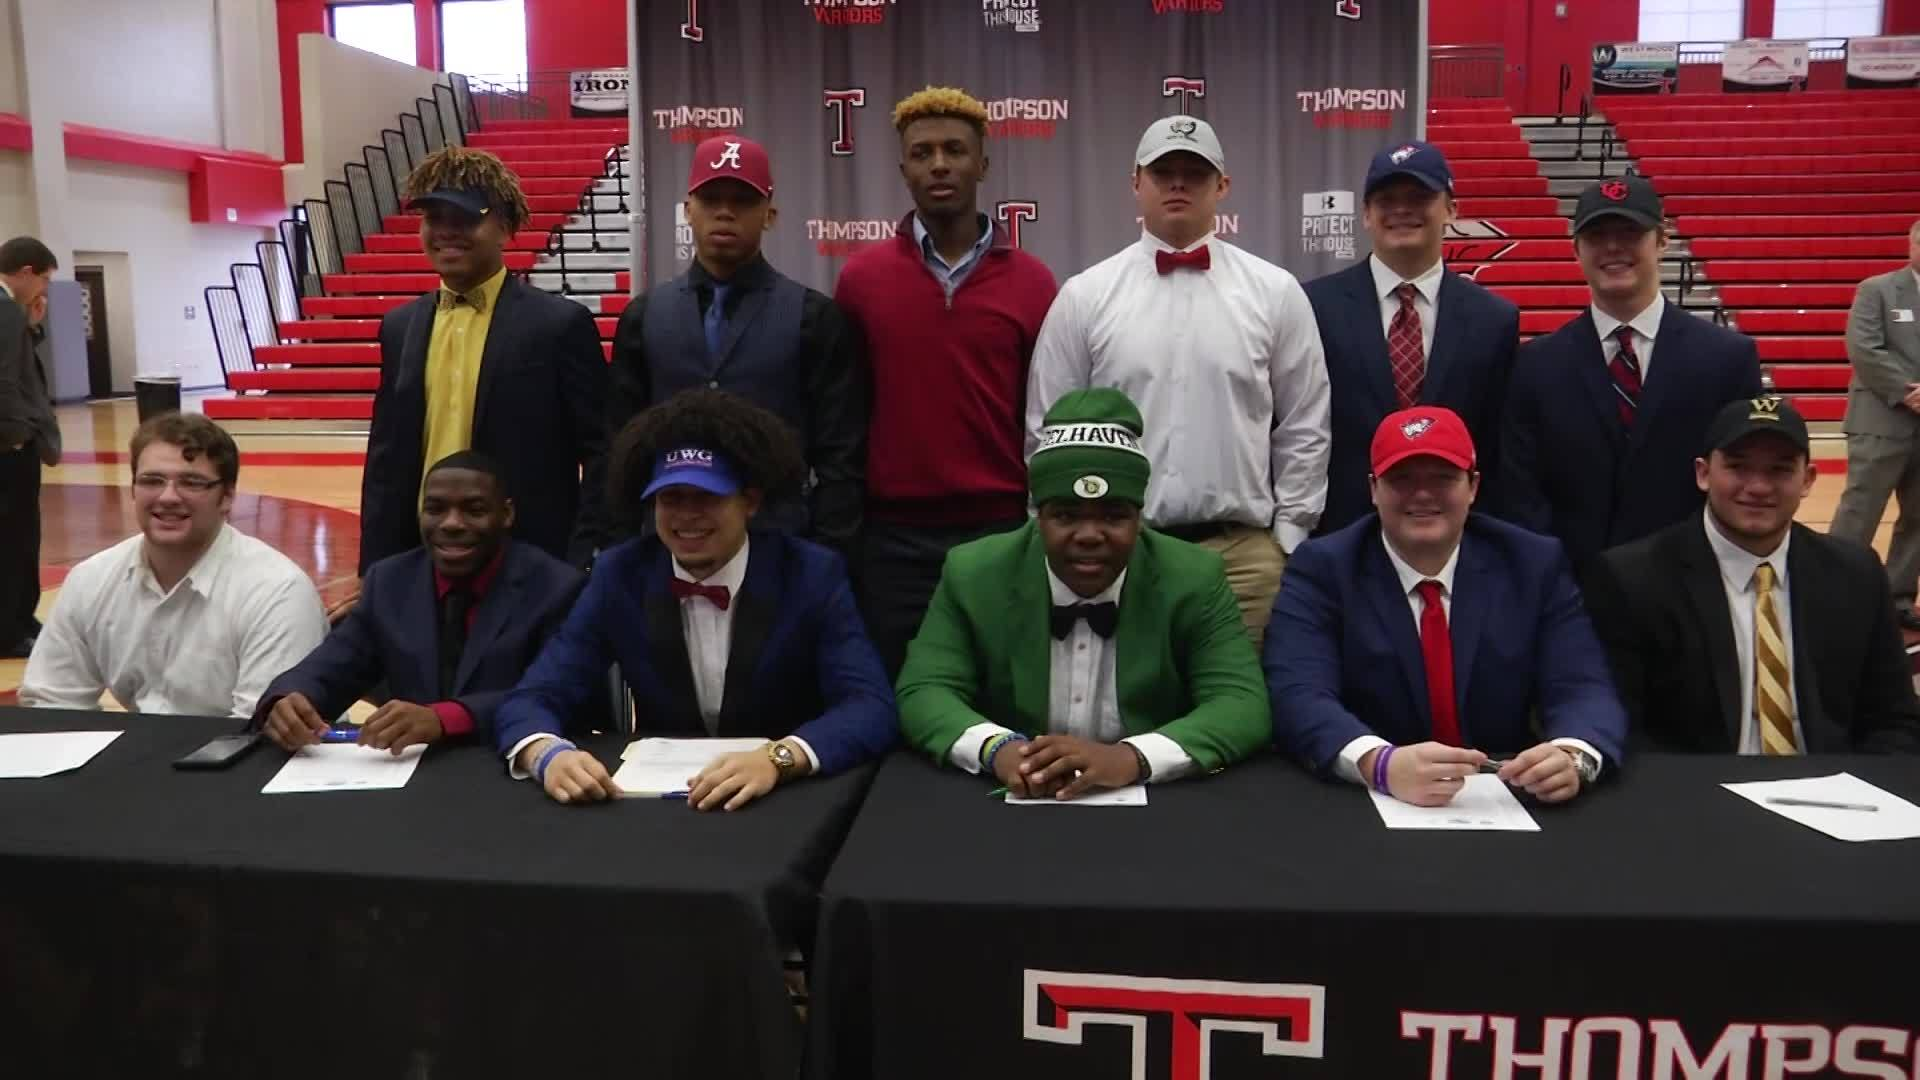 Thompson HS Signings